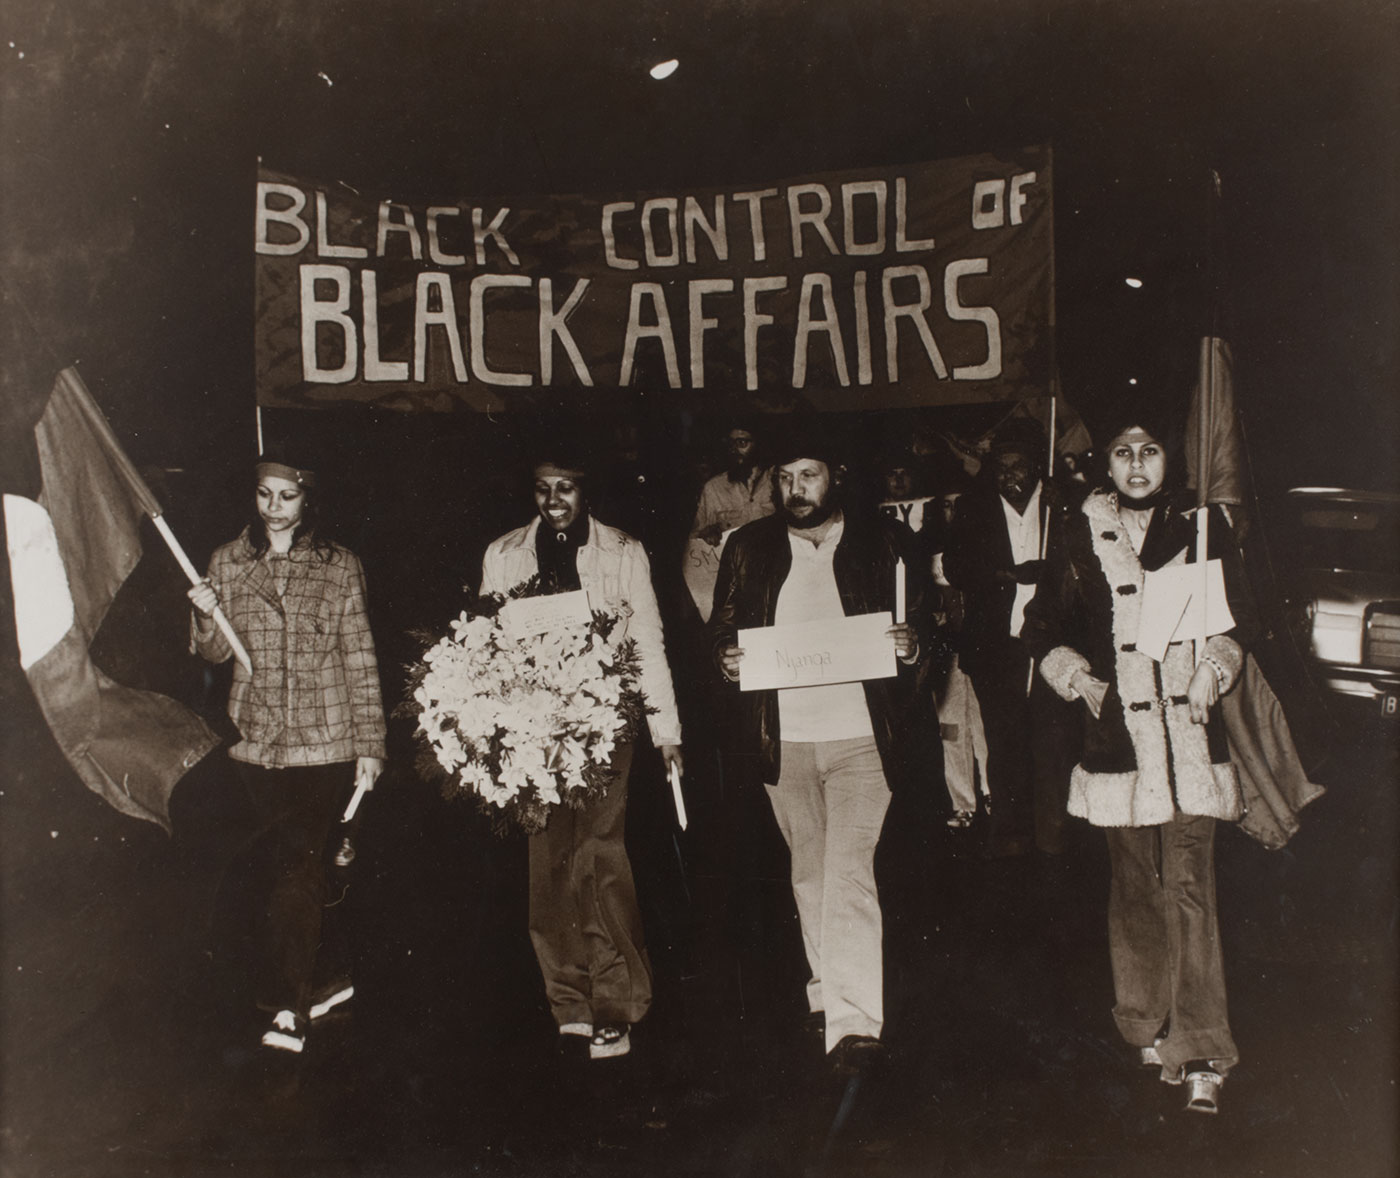 Black and white photograph showing three women and a man walking under a banner which reads 'BLACK CONTROL OF BLACK AFFAIRS'. The woman on the left carries an Aboriginal flag, the next woman along carries a large bunch of white flowers and a man to her right carries a small sign. More people are partially visible in the background.